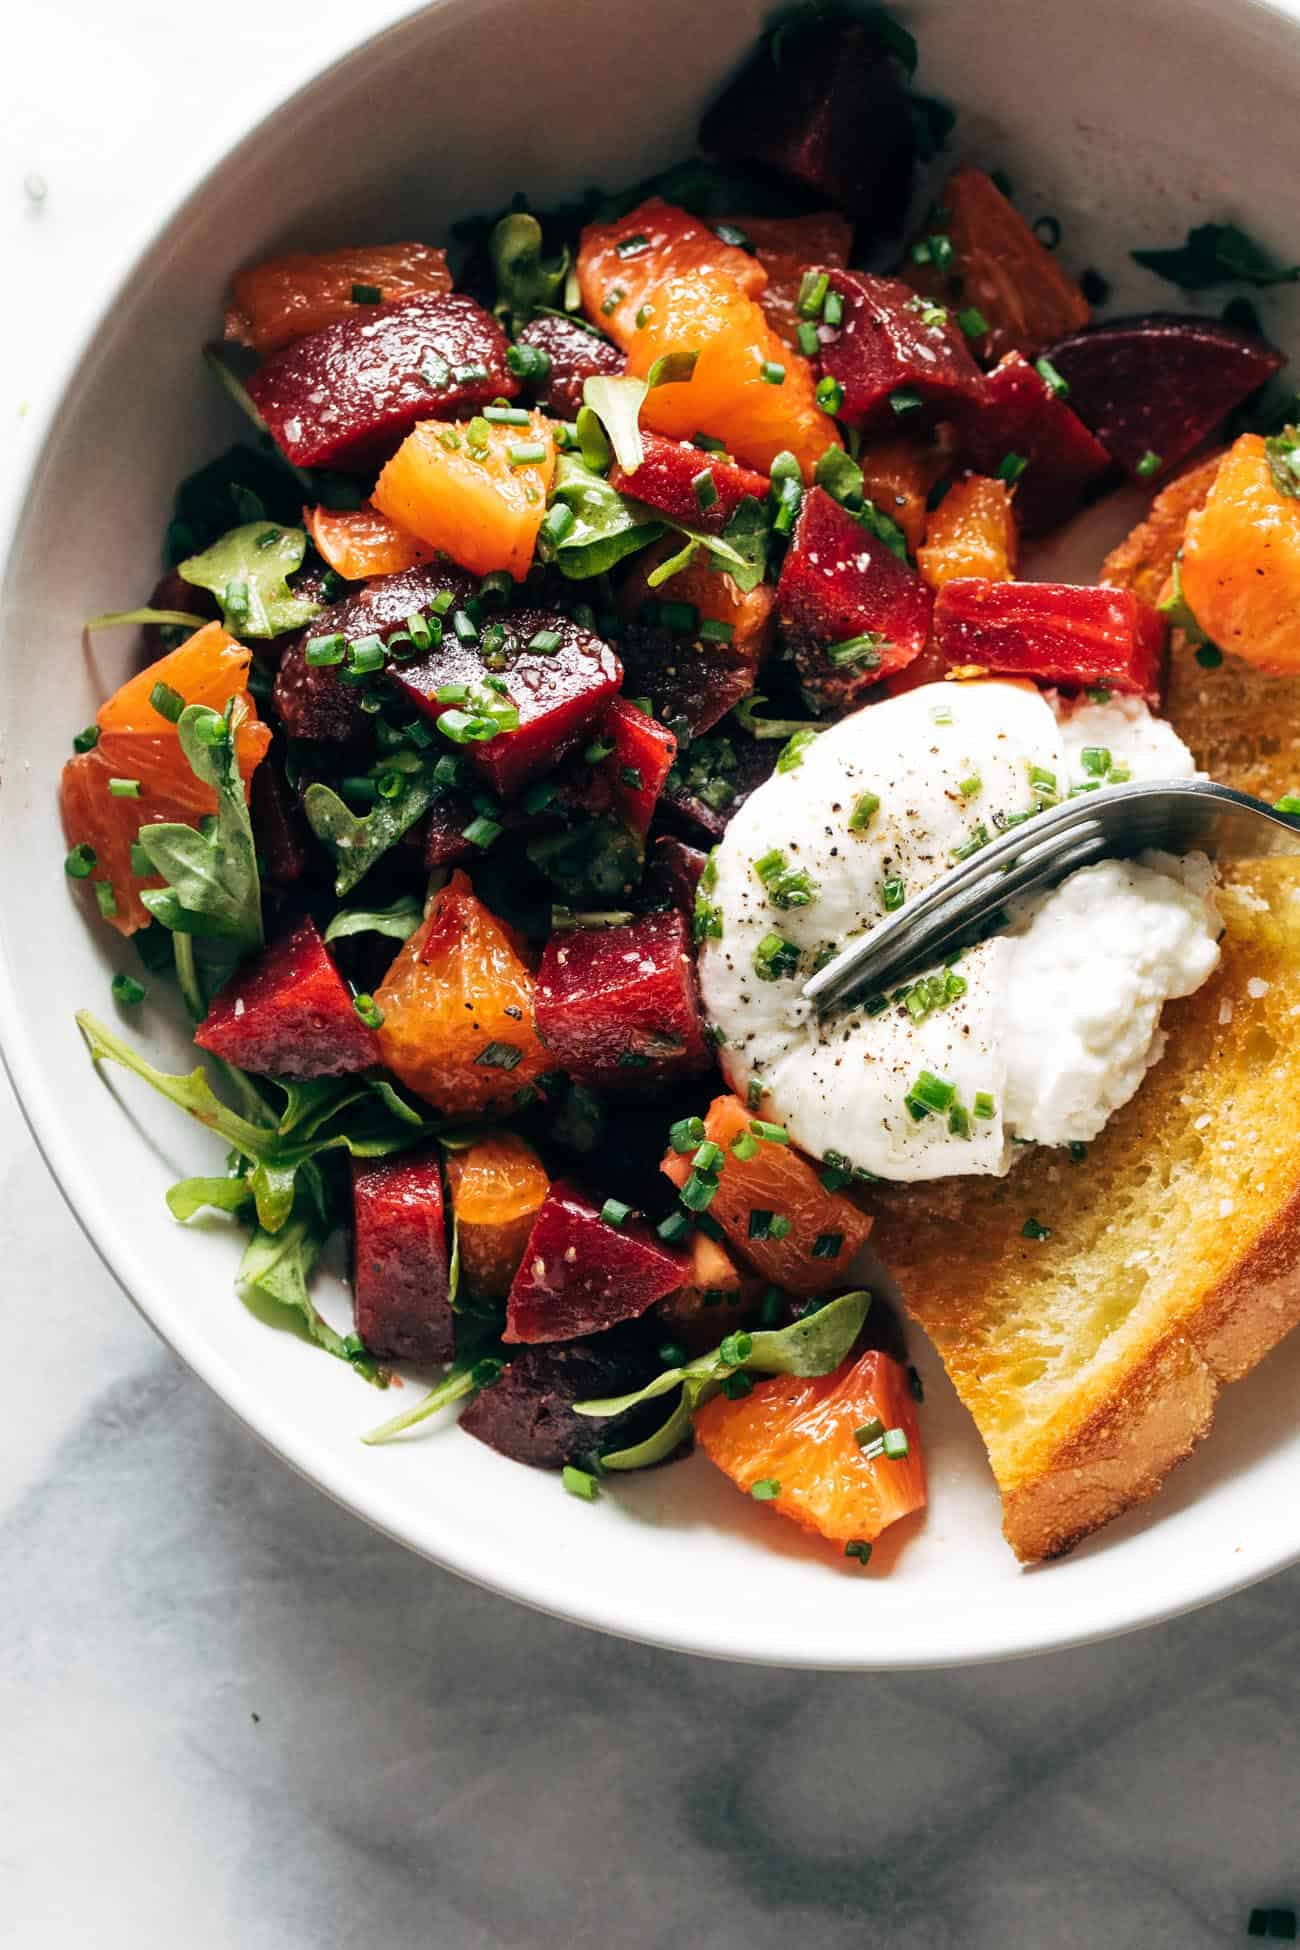 Beet and burrata salad in a bowl with fried bread and a fork